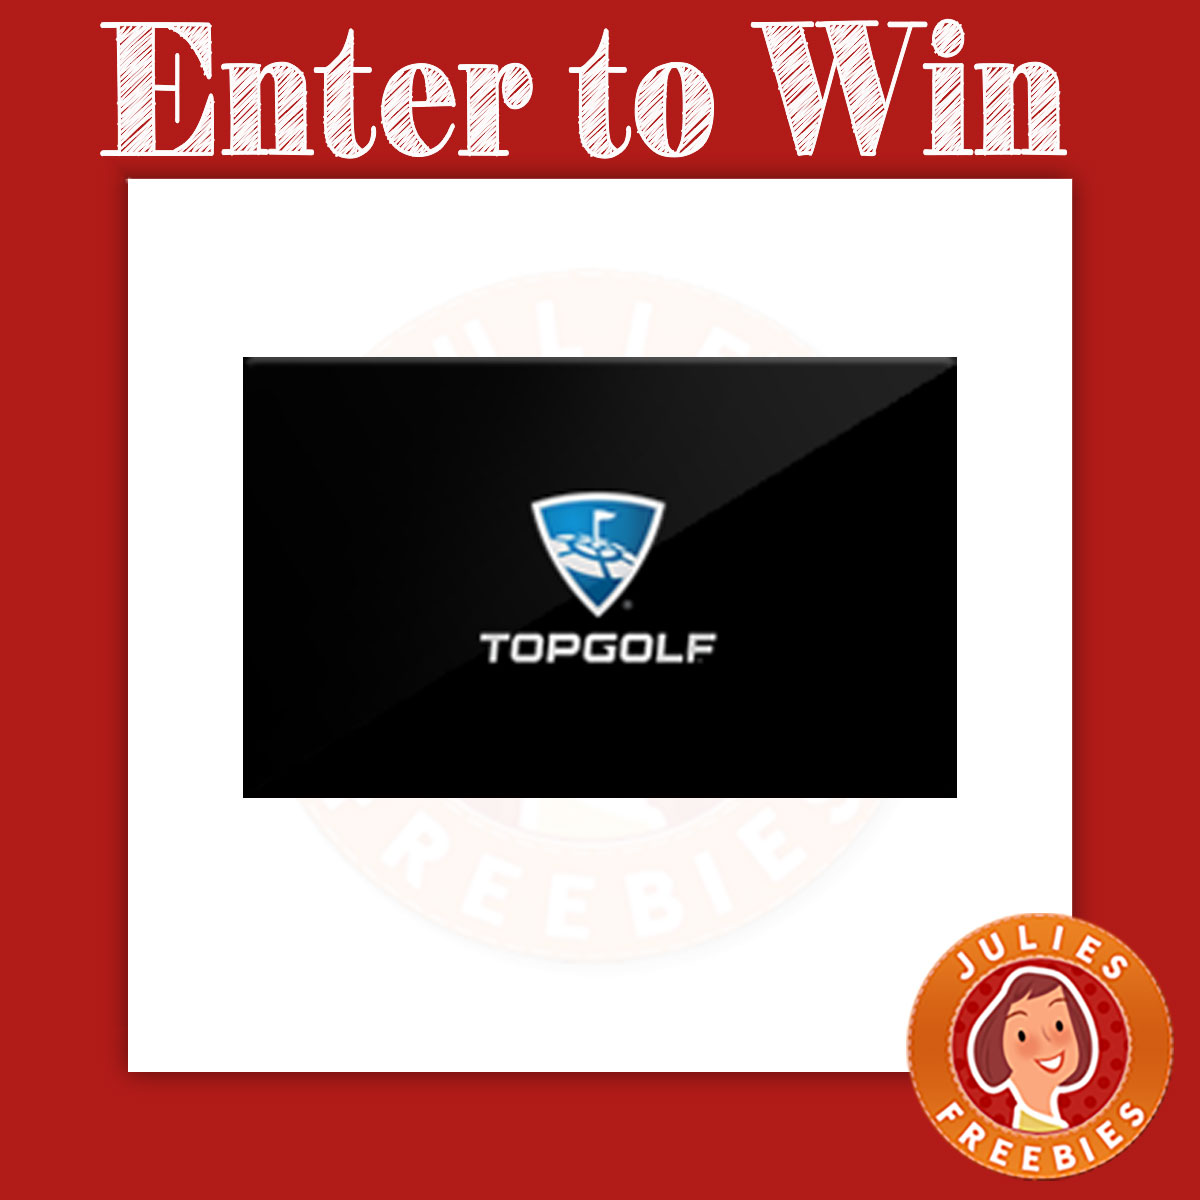 Pepsi Ryder Cup Sweepstakes at TopGolf - Julie's Freebies